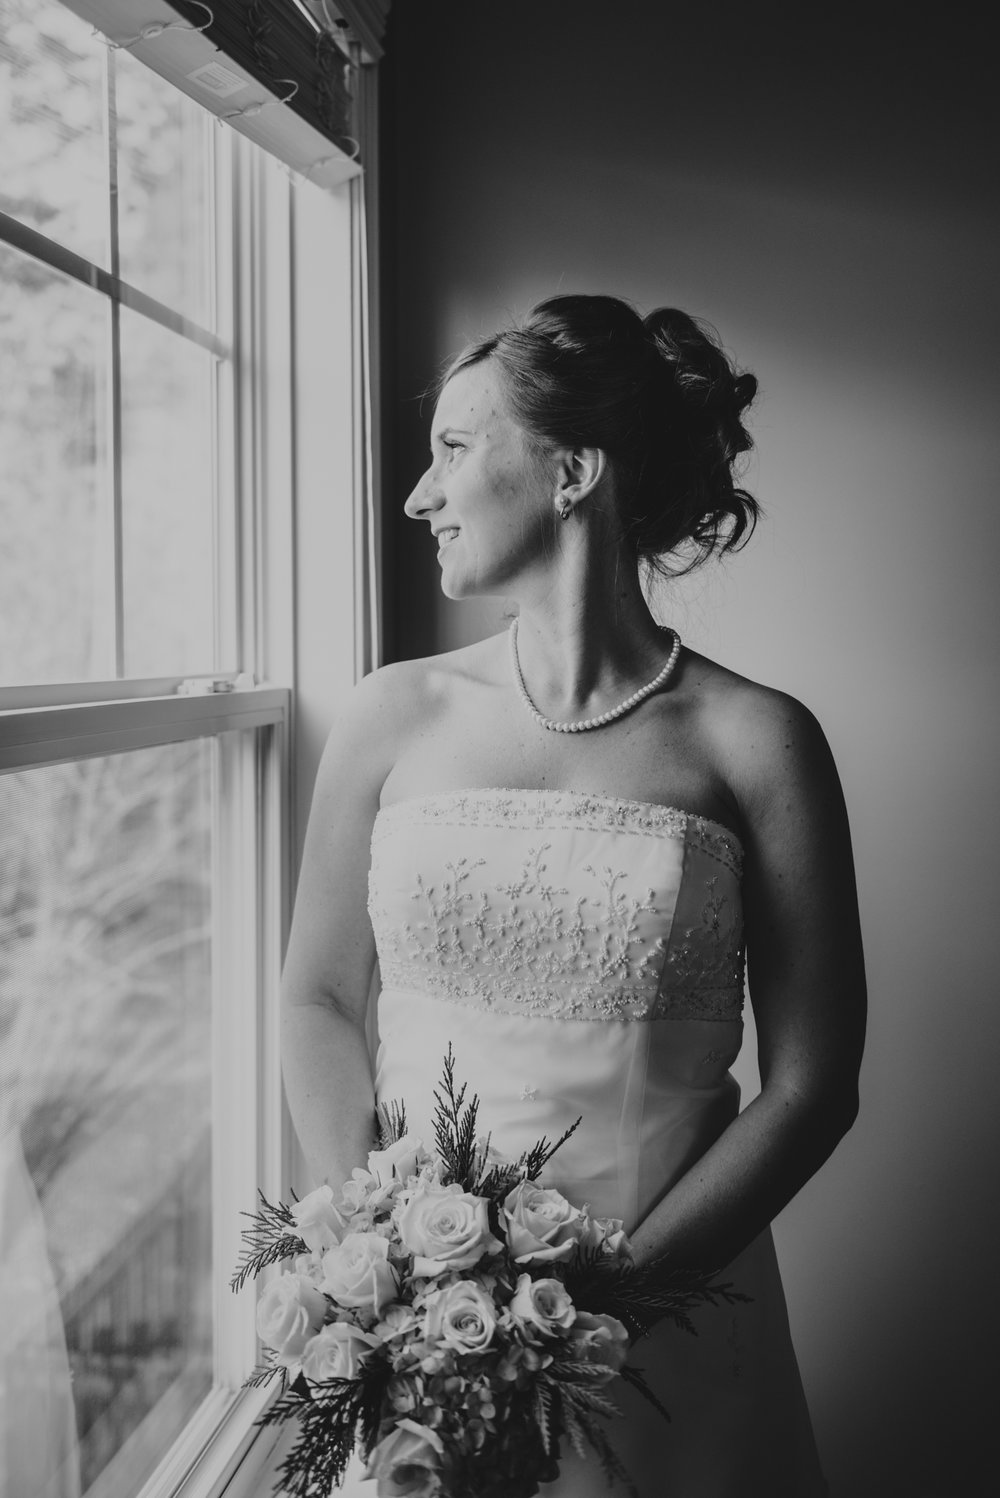 the-bride-looking-out-the-window-eagerly-before-her-intimate-home-wedding-in-Raleigh.jpg